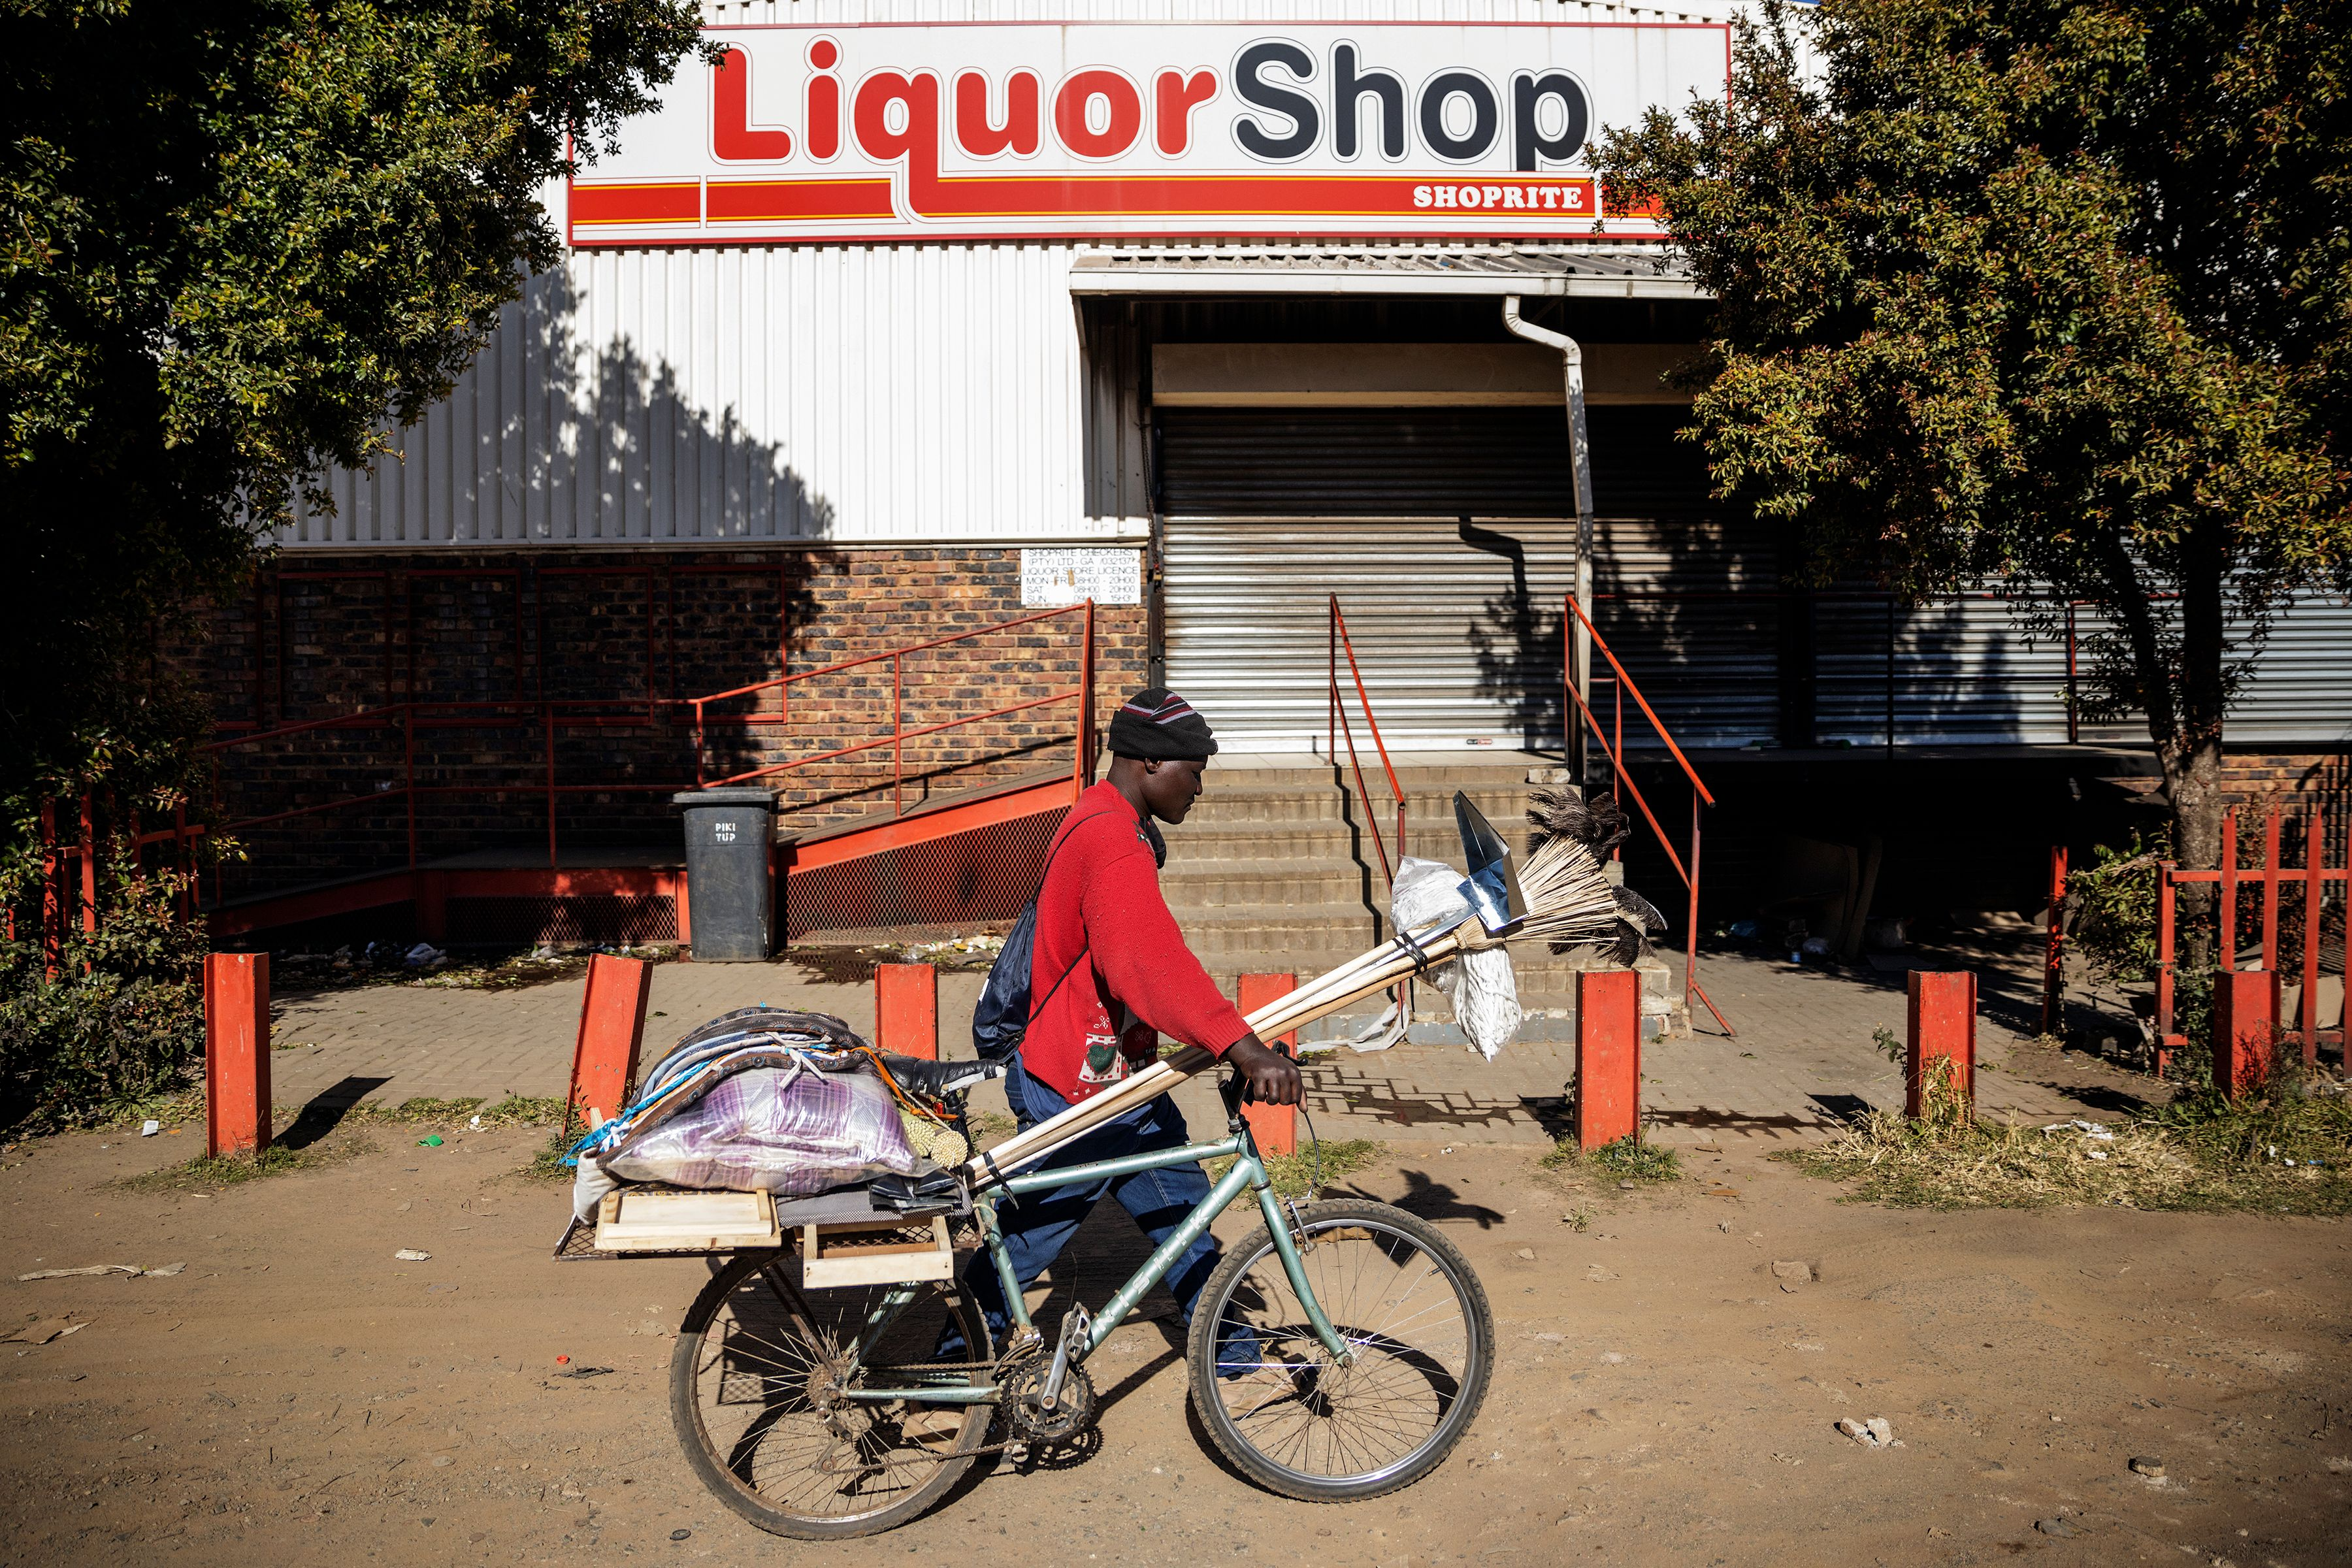 A man walks past a closed liquor shop in Soweto, on July 13, 2020. - South African President Cyril Ramaphosa on July 12, 2020 re-imposed a night curfew and suspended alcohol sales as COVID-19 coronavirus infections spiked and the health system risked being overwhelmed. (Photo by Michele Spatari / AFP) (Photo by MICHELE SPATARI/AFP via Getty Images)